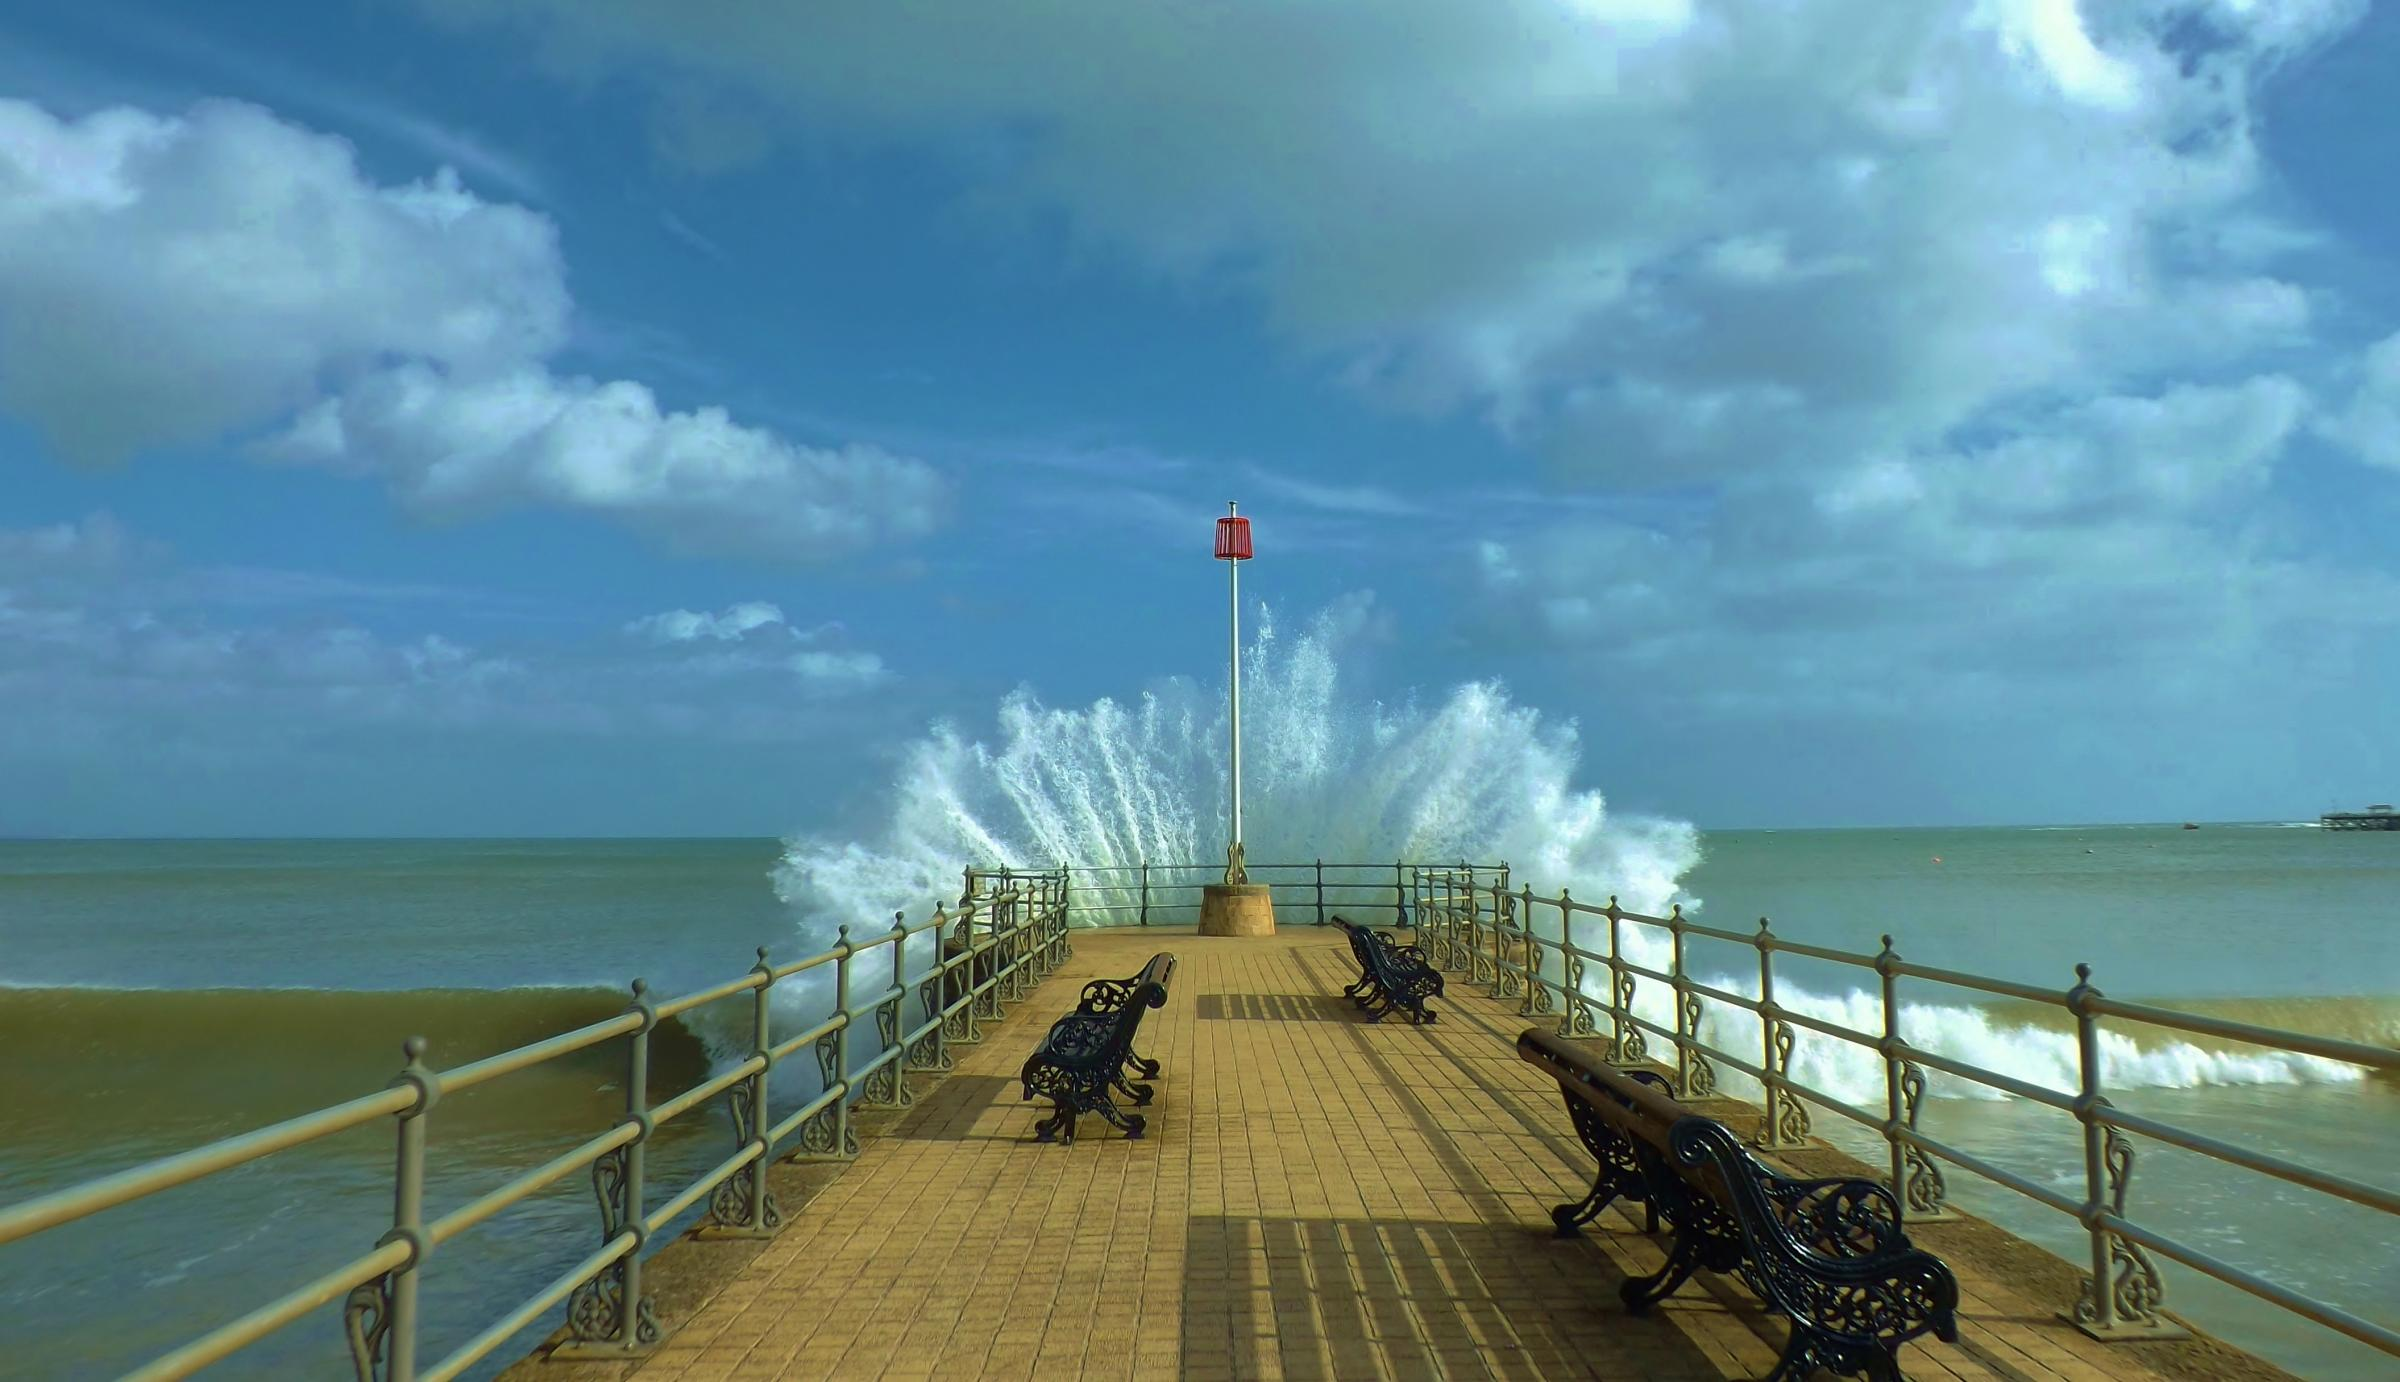 Rough seas at Swanage due to the east wind plus a high tide, captured by Echo Camera Club member Robin Boultwood